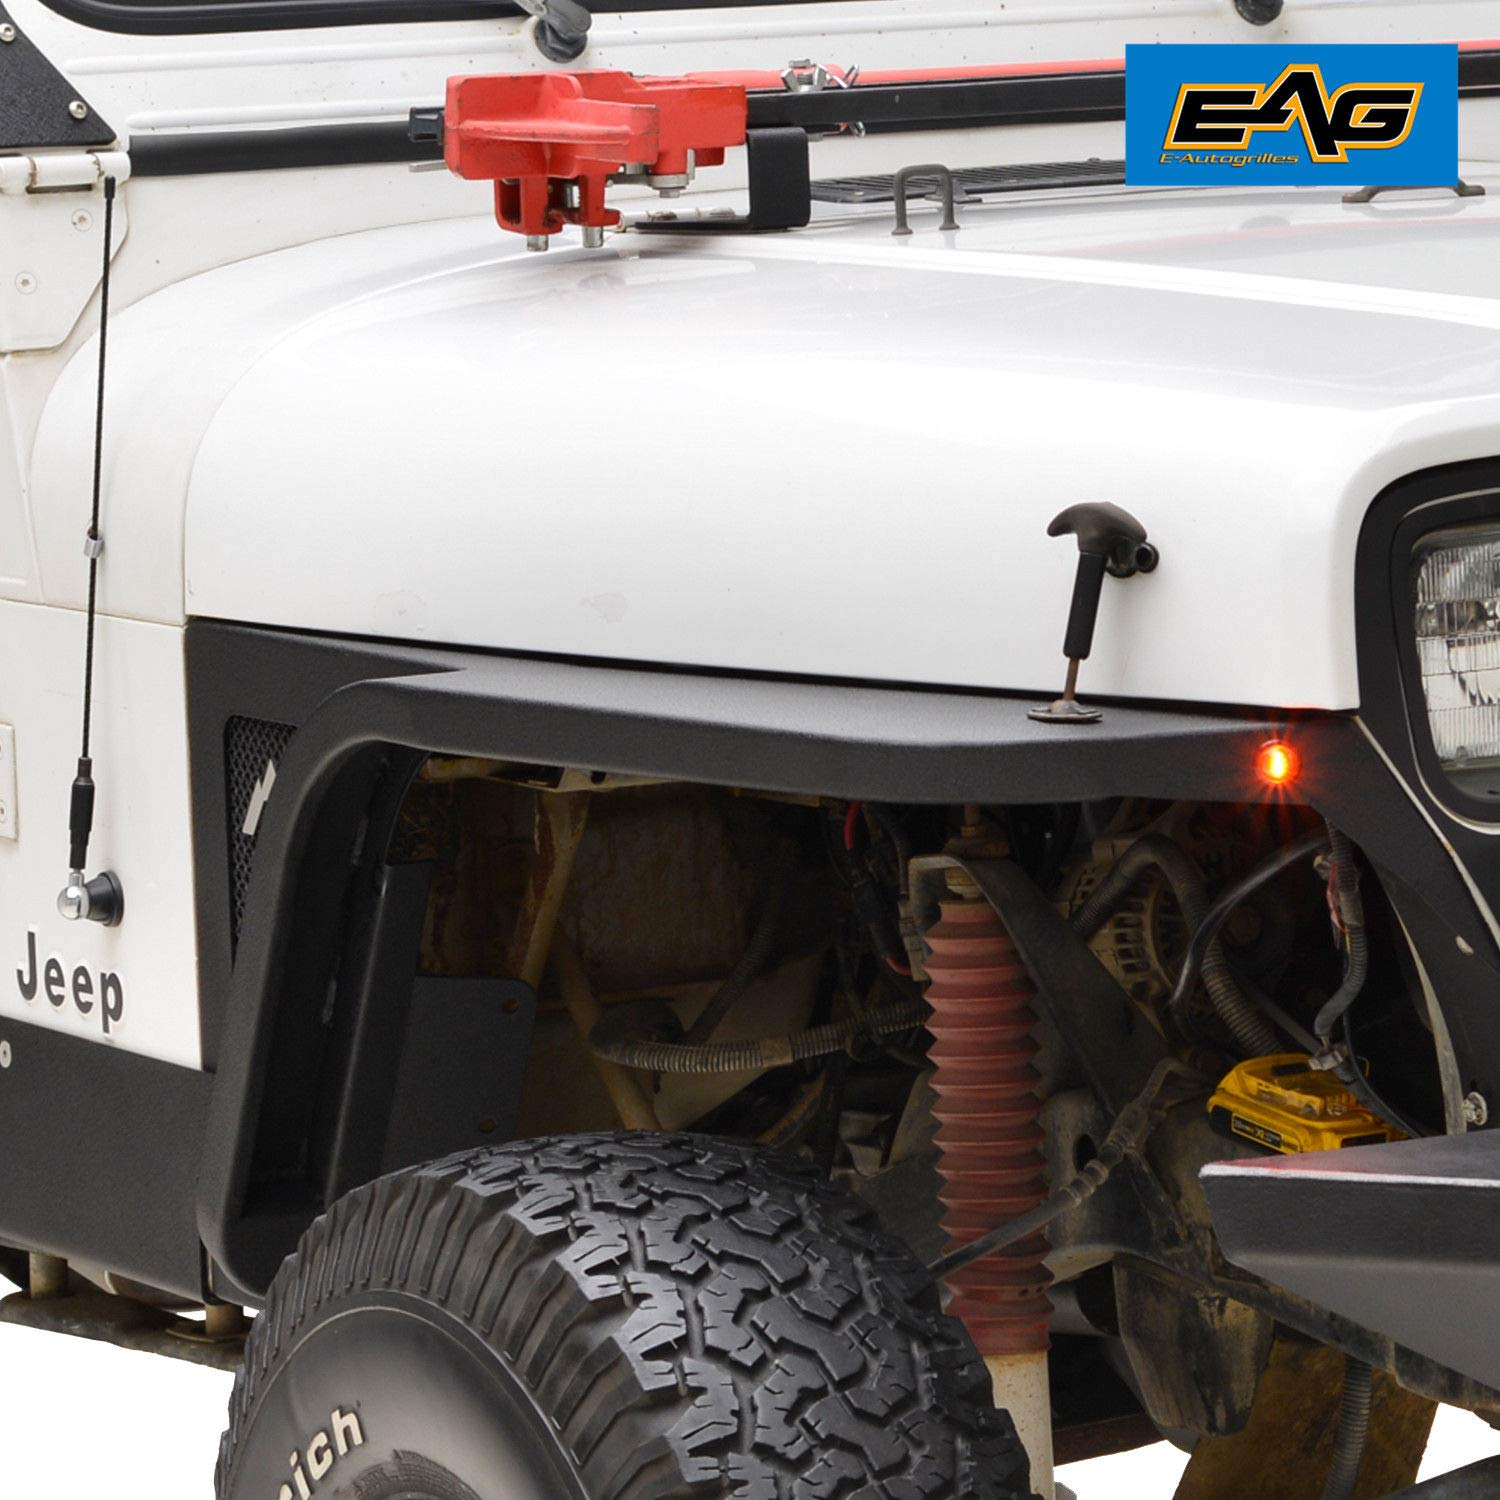 EAG Front Fender with Flair and LED Eagle Lights for 87-96 Jeep Wrangler YJ